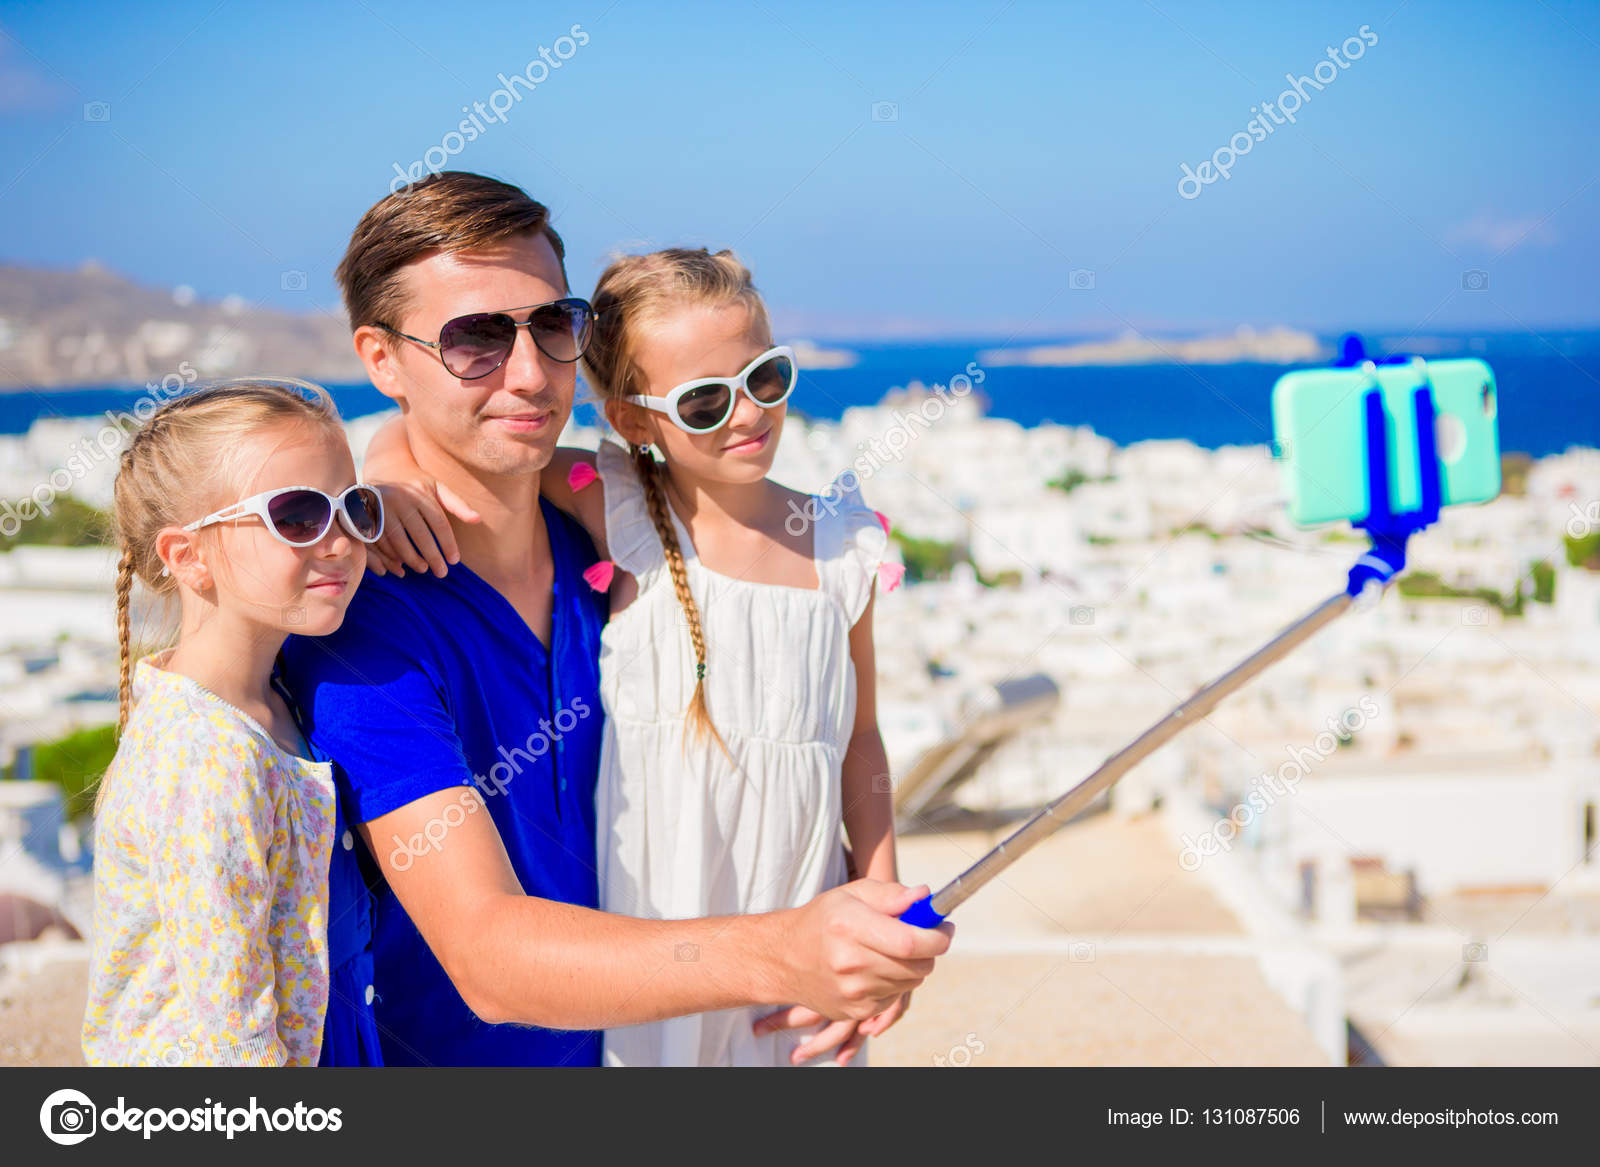 Family Vacation In Europe Father And Kids Taking Selfie Background Mykonos Town Greece